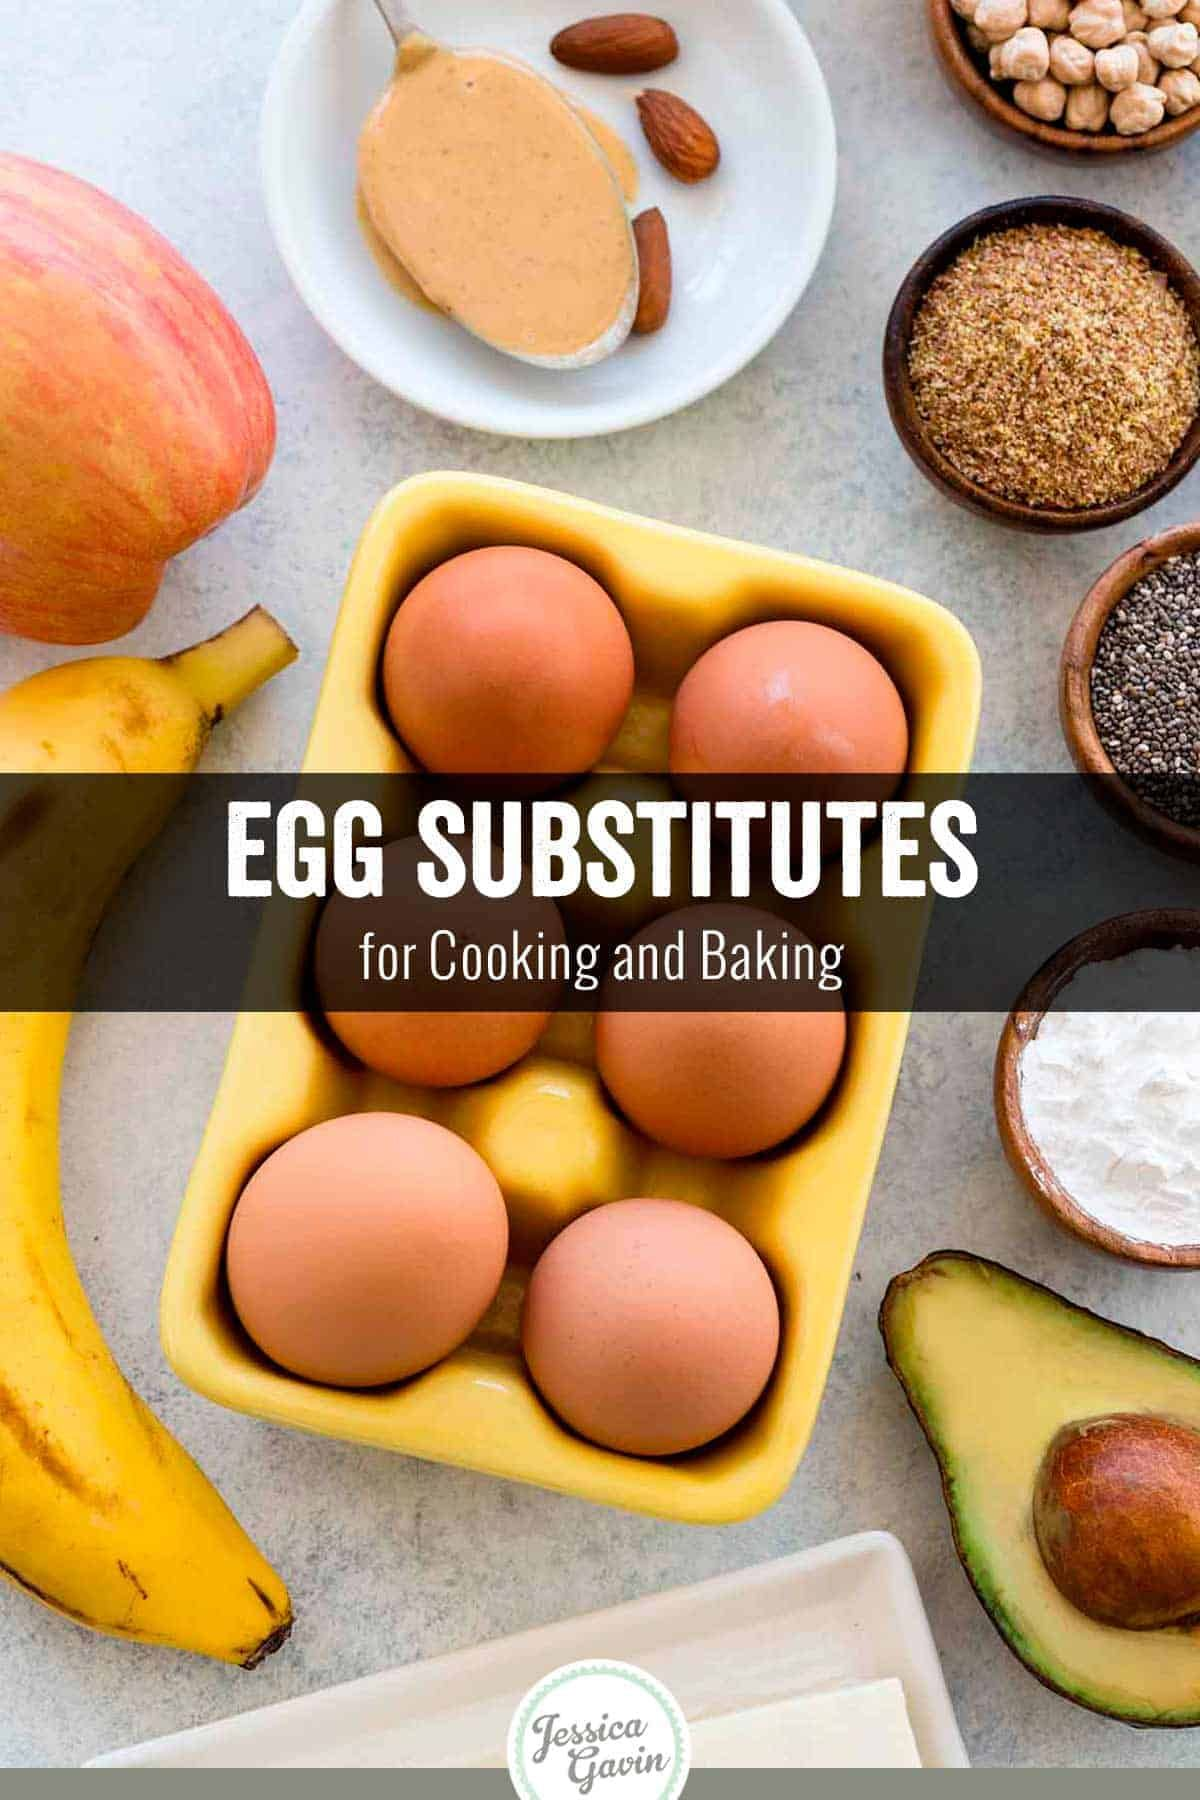 Egg Substitutes For Cooking And Baking Jessica Gavin Egg Substitute For Cooking Substitute For Egg Baking Substitutes